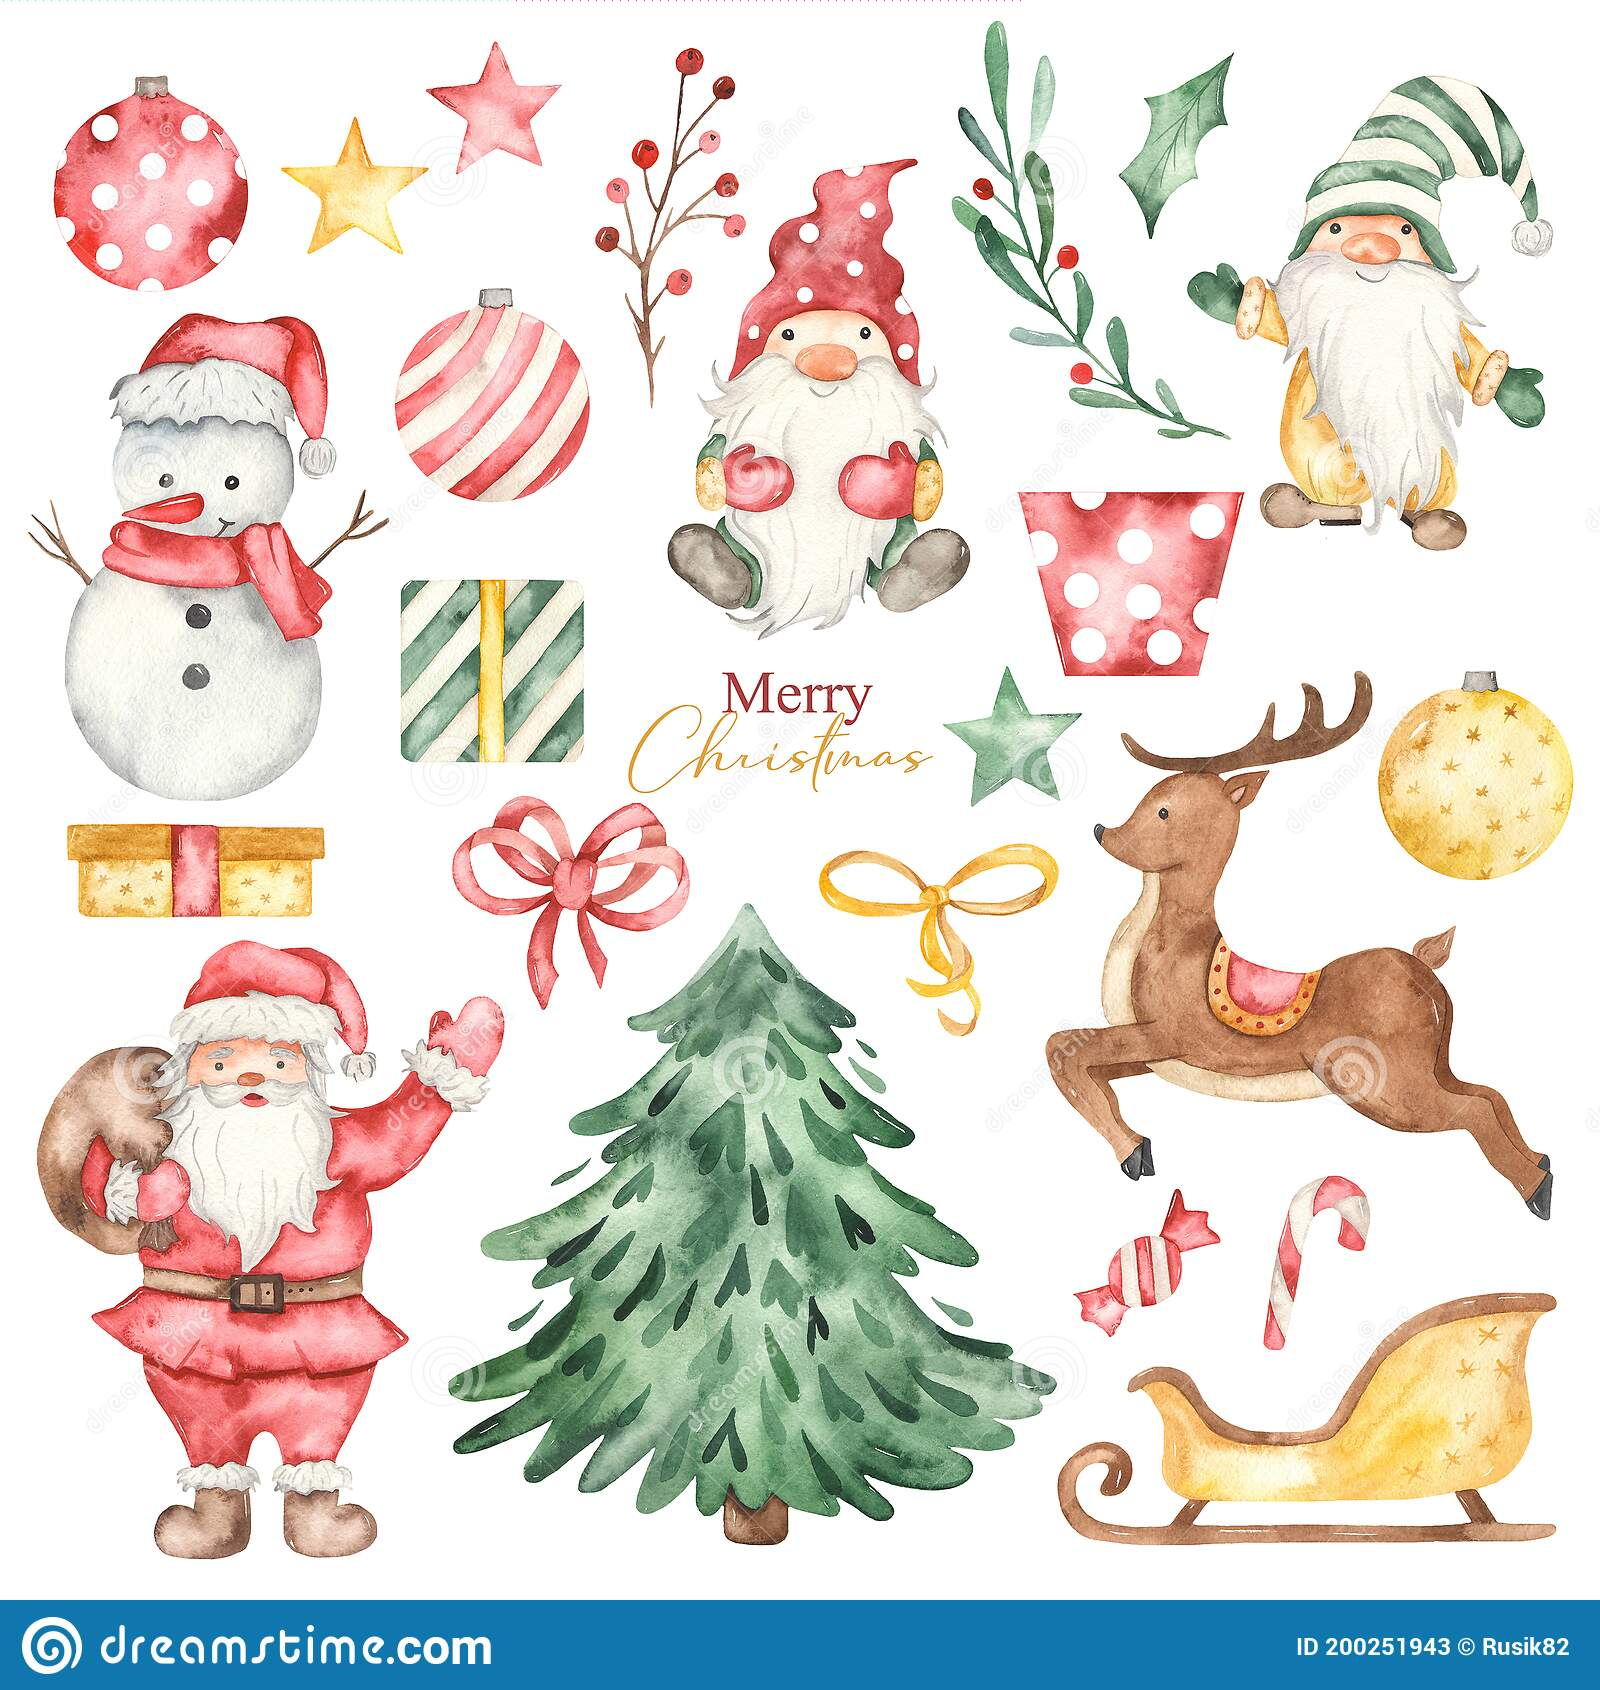 Christmas Sleigh Clipart Stock Illustrations 975 Christmas Sleigh Clipart Stock Illustrations Vectors Clipart Dreamstime